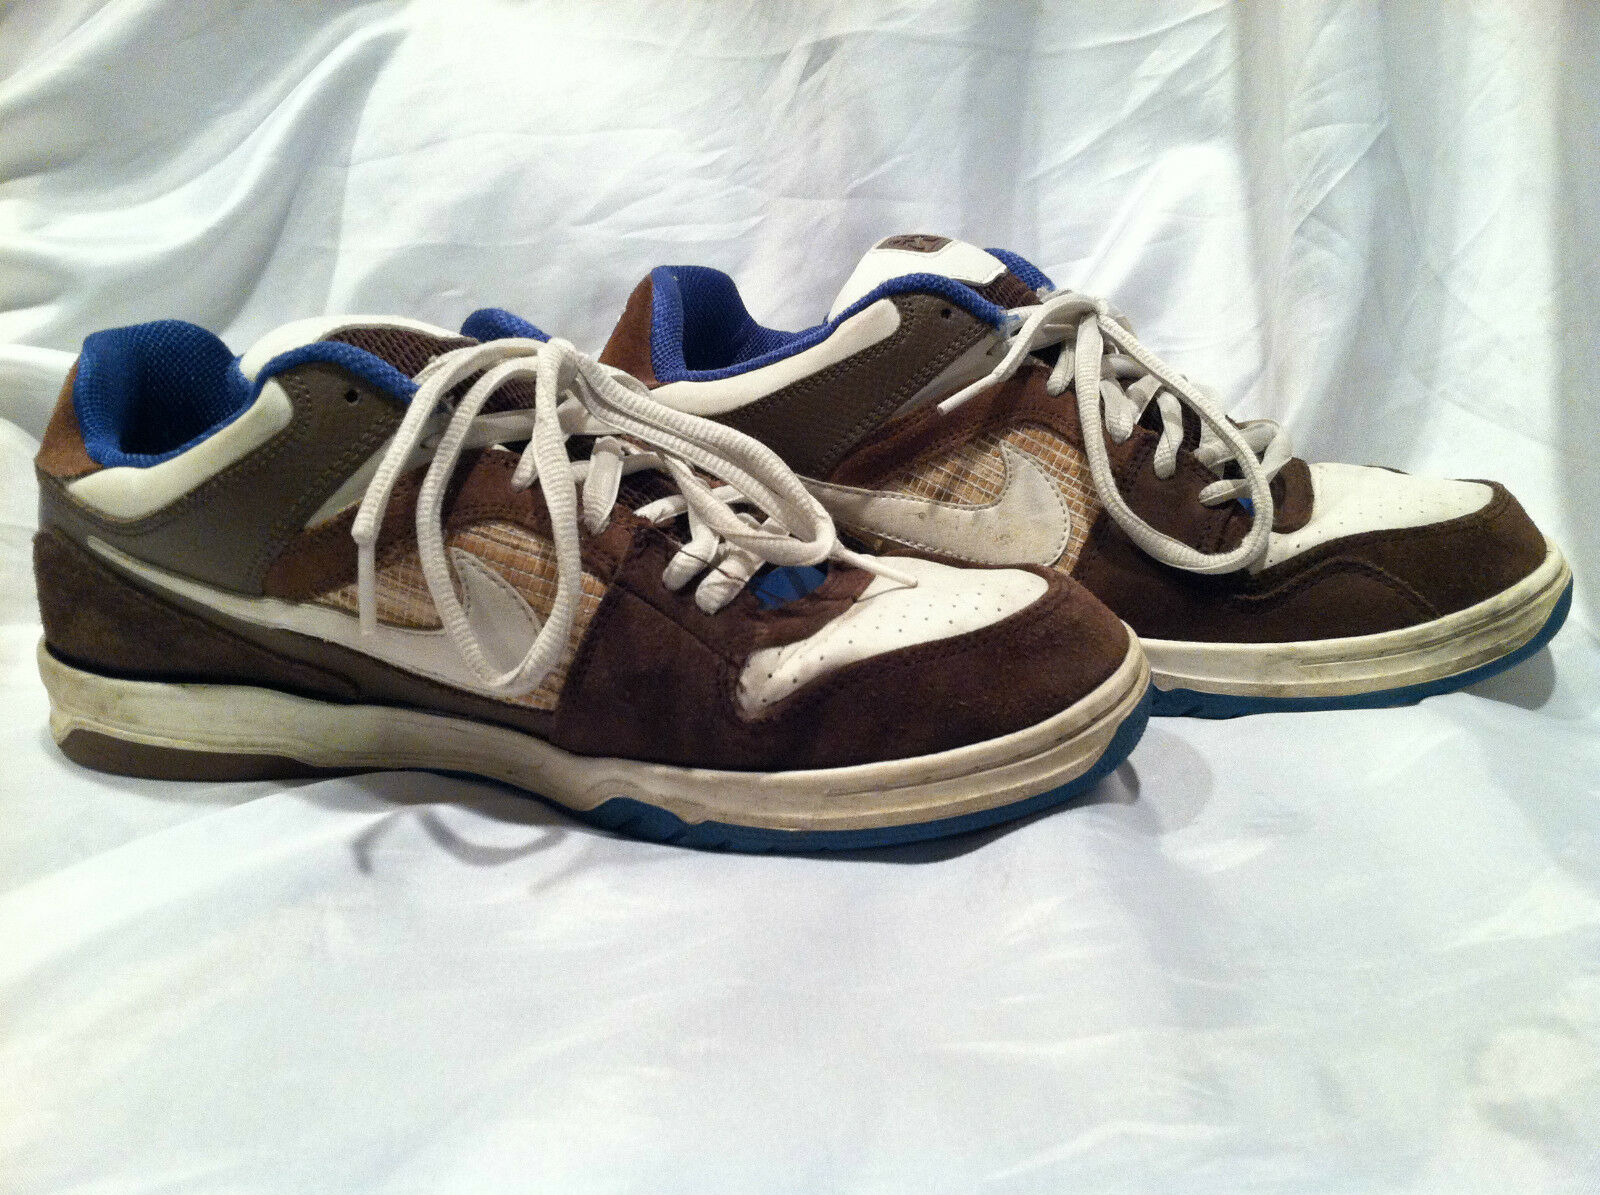 2008 NIKE 6.0 Sneakers Size U.S. 12 Brown/White/Blue